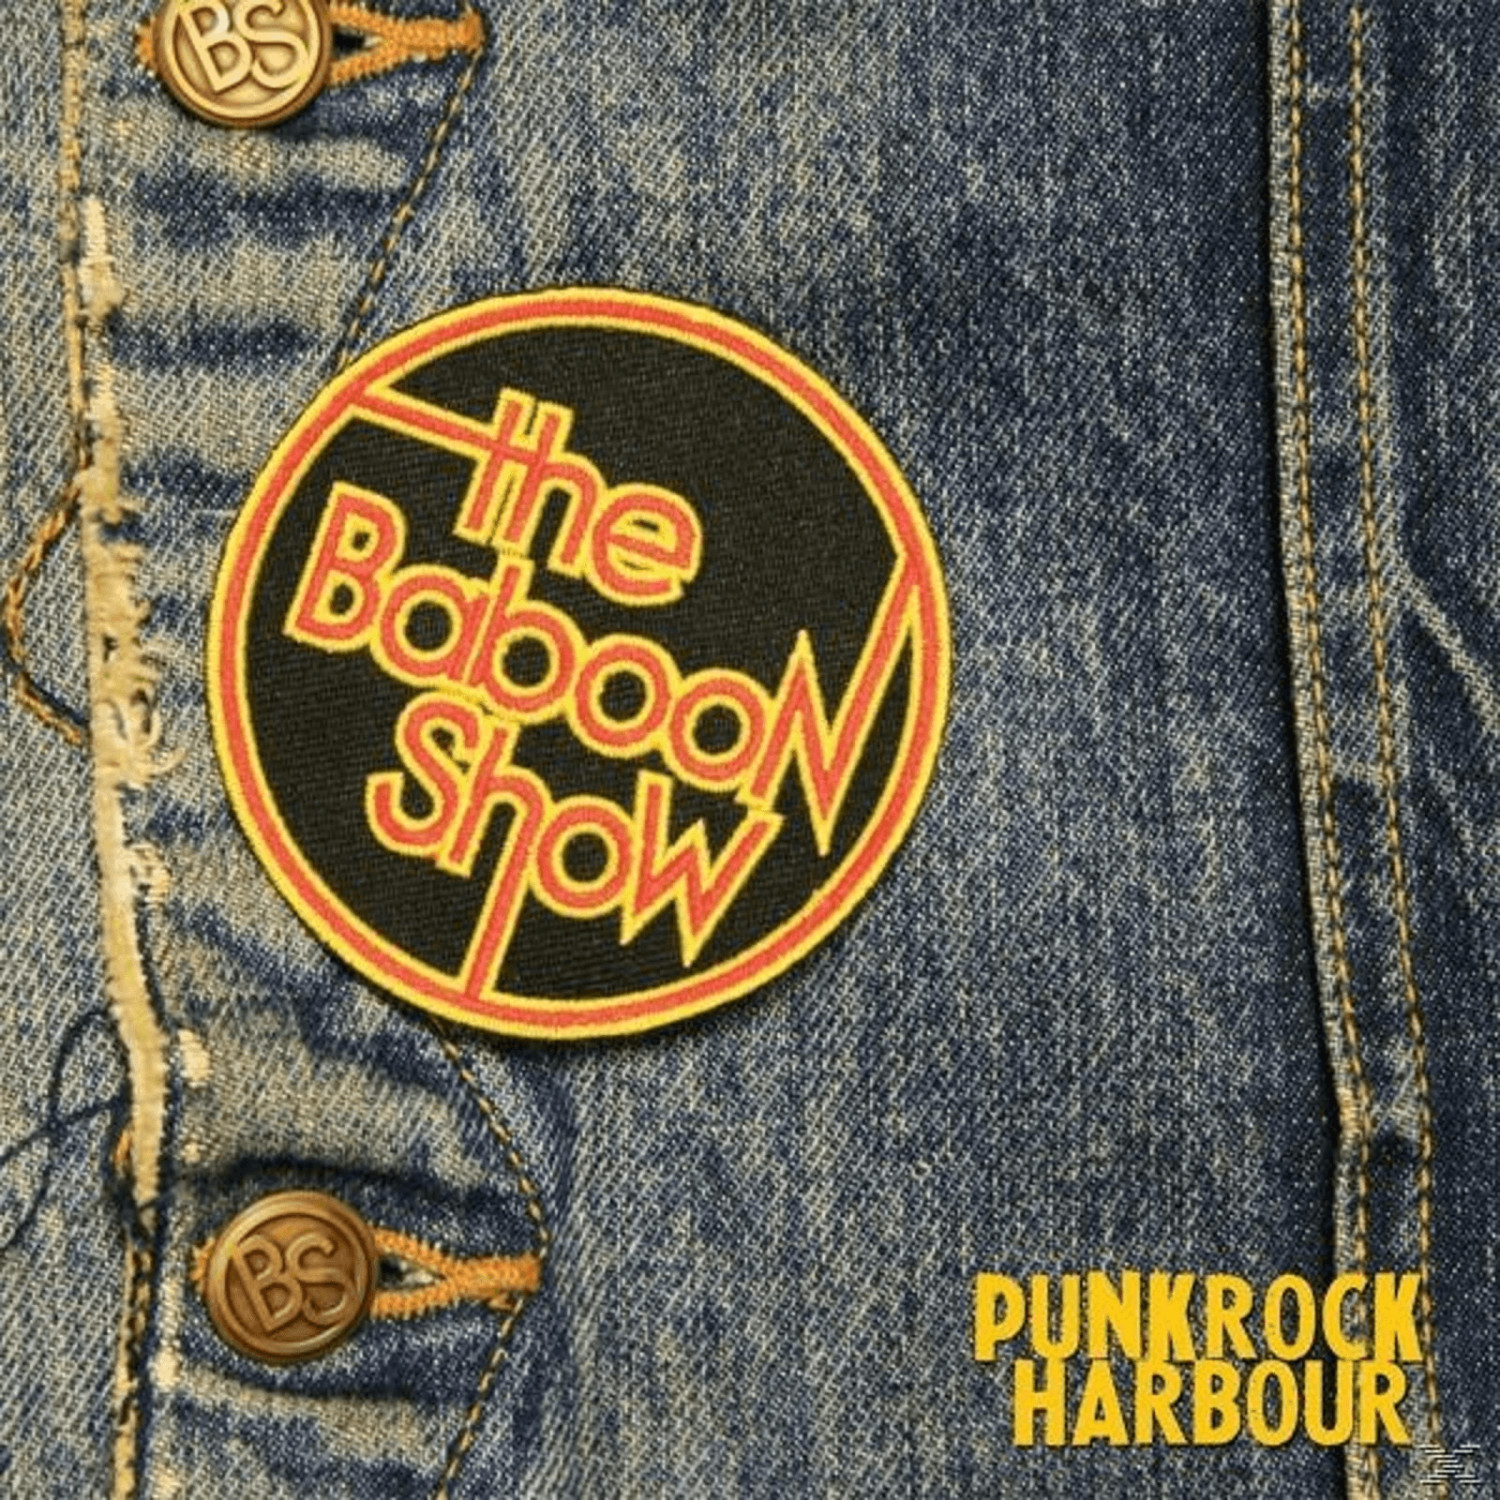 The Baboon Show - Punkrock Harbour - (CD)